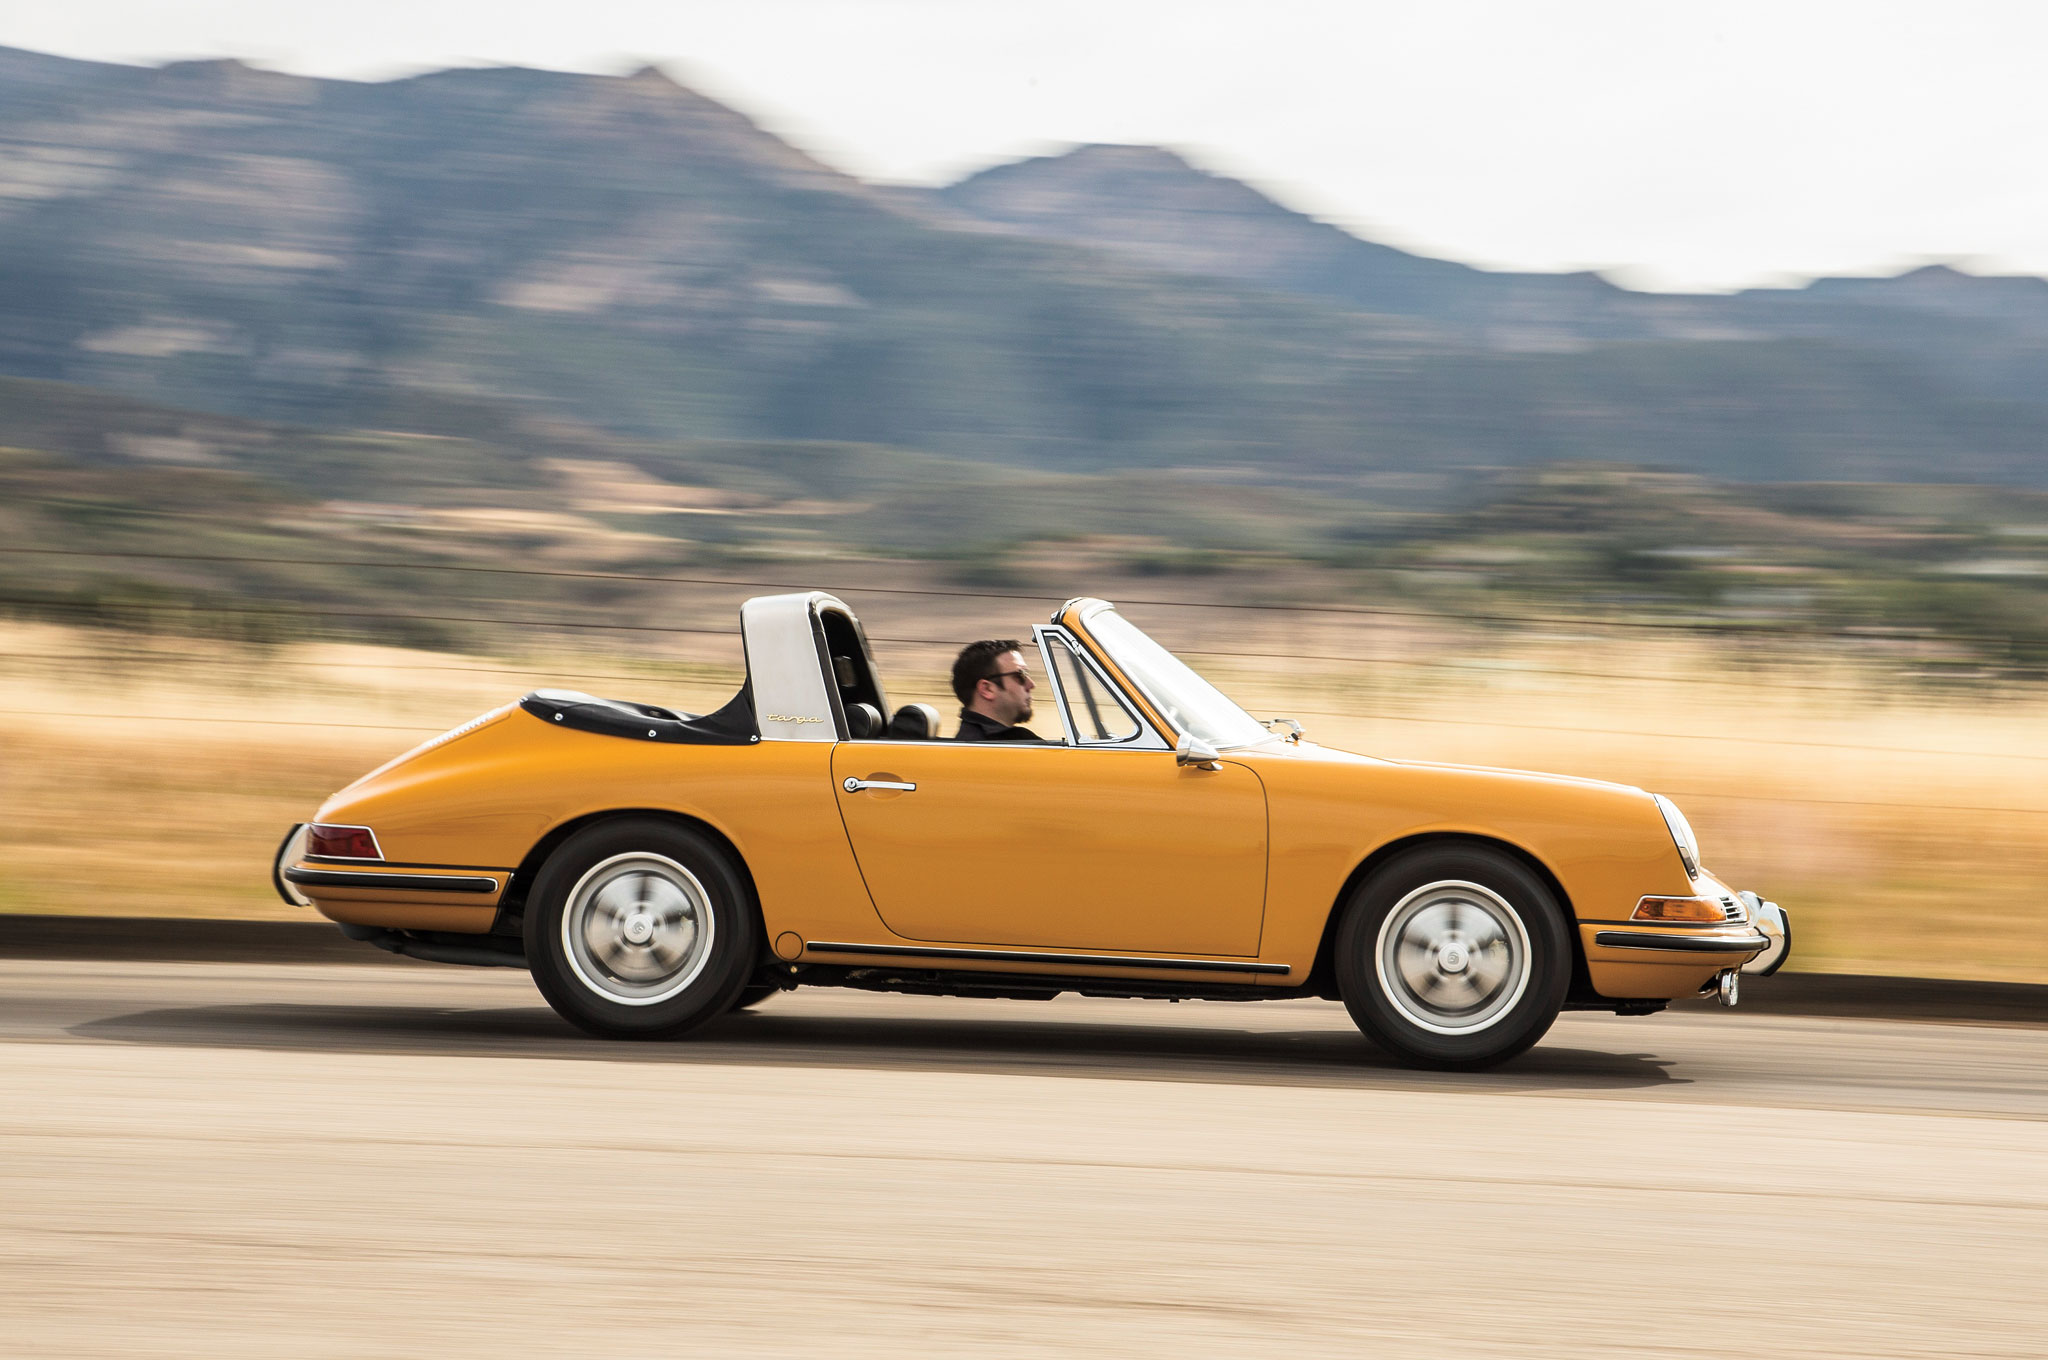 This vintage 911S looks fabulously '60s with its Bahama Yellow paint and classic five-spoke Fuchs wheels.